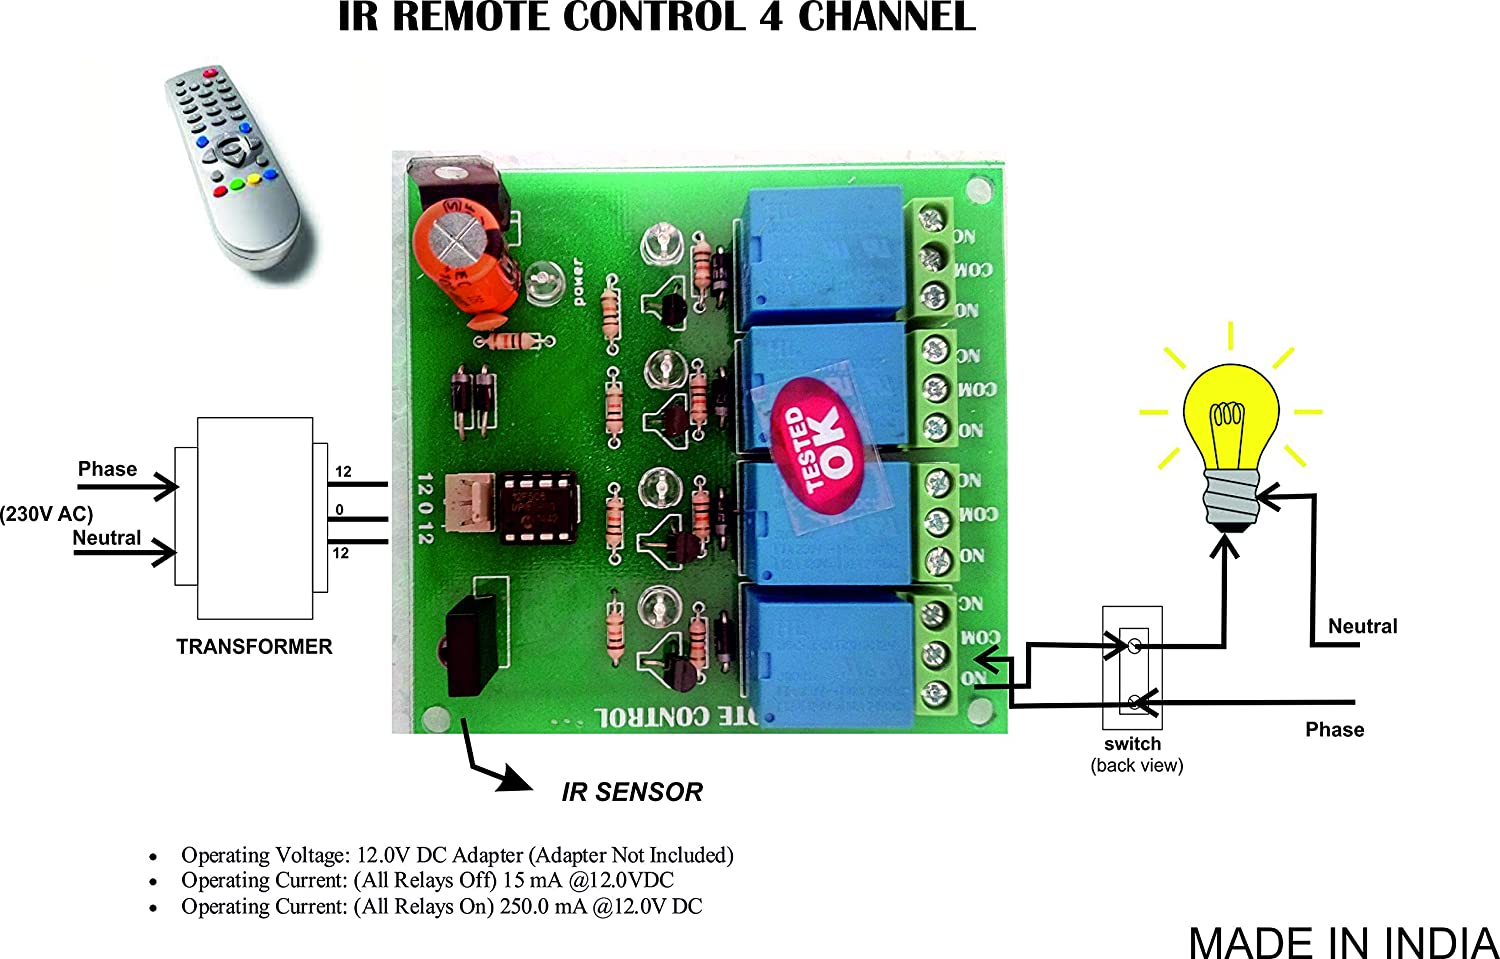 Buy Wireless Infrared Ir Remote Control 4 Channel Board Home Transmitter Integrated Circuit Industrial Automation Online At Low Prices In India